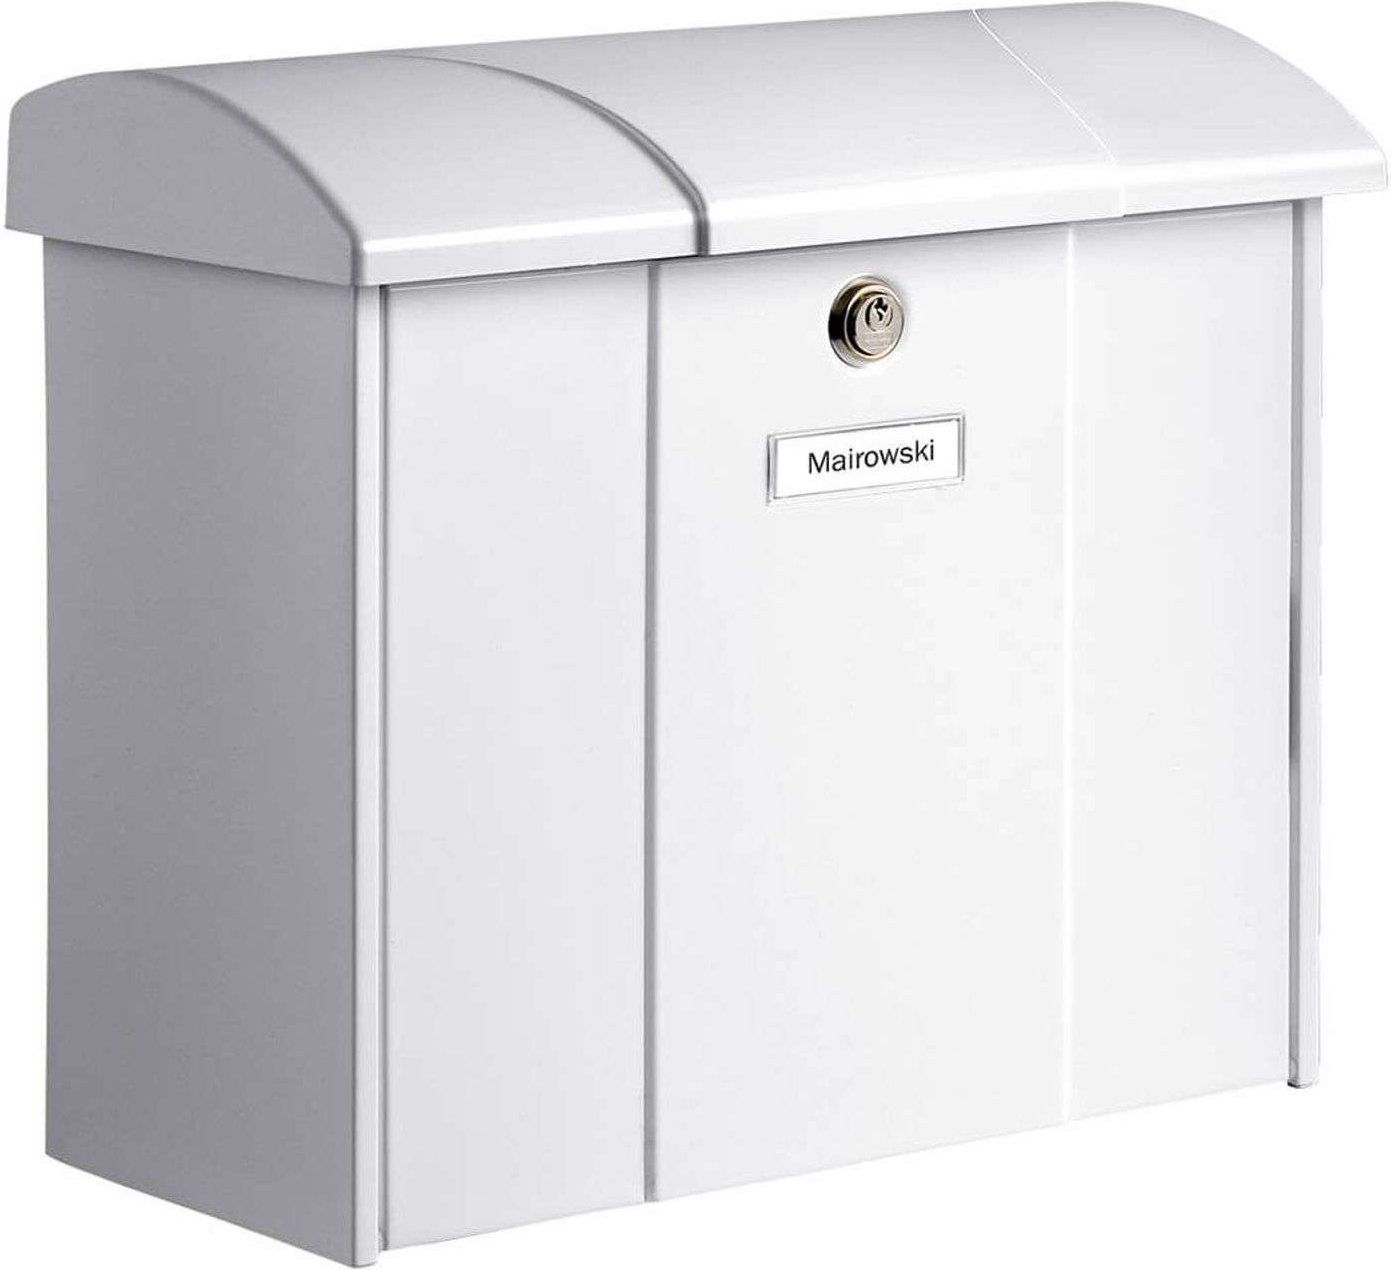 Olymp letterbox in white